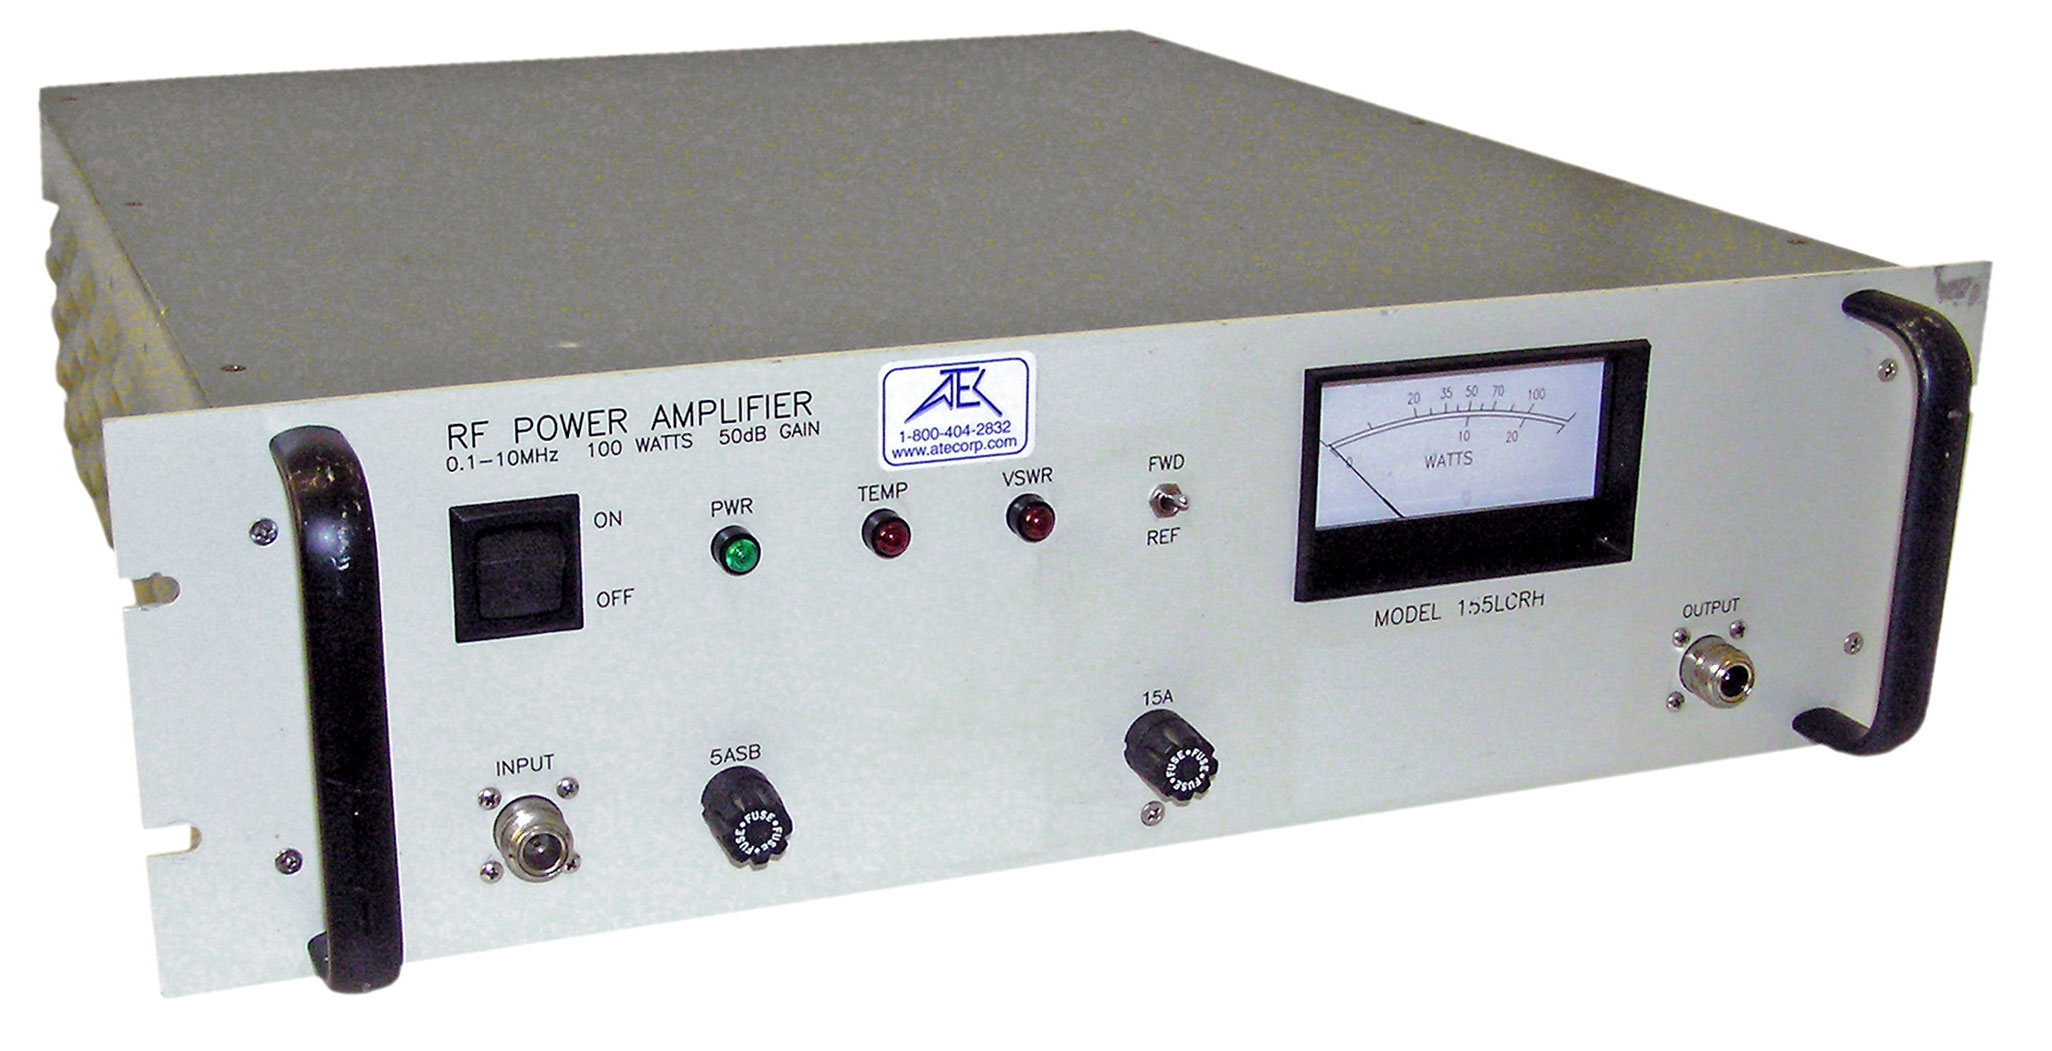 Kalmus 155LCRH RF Power Amplifier